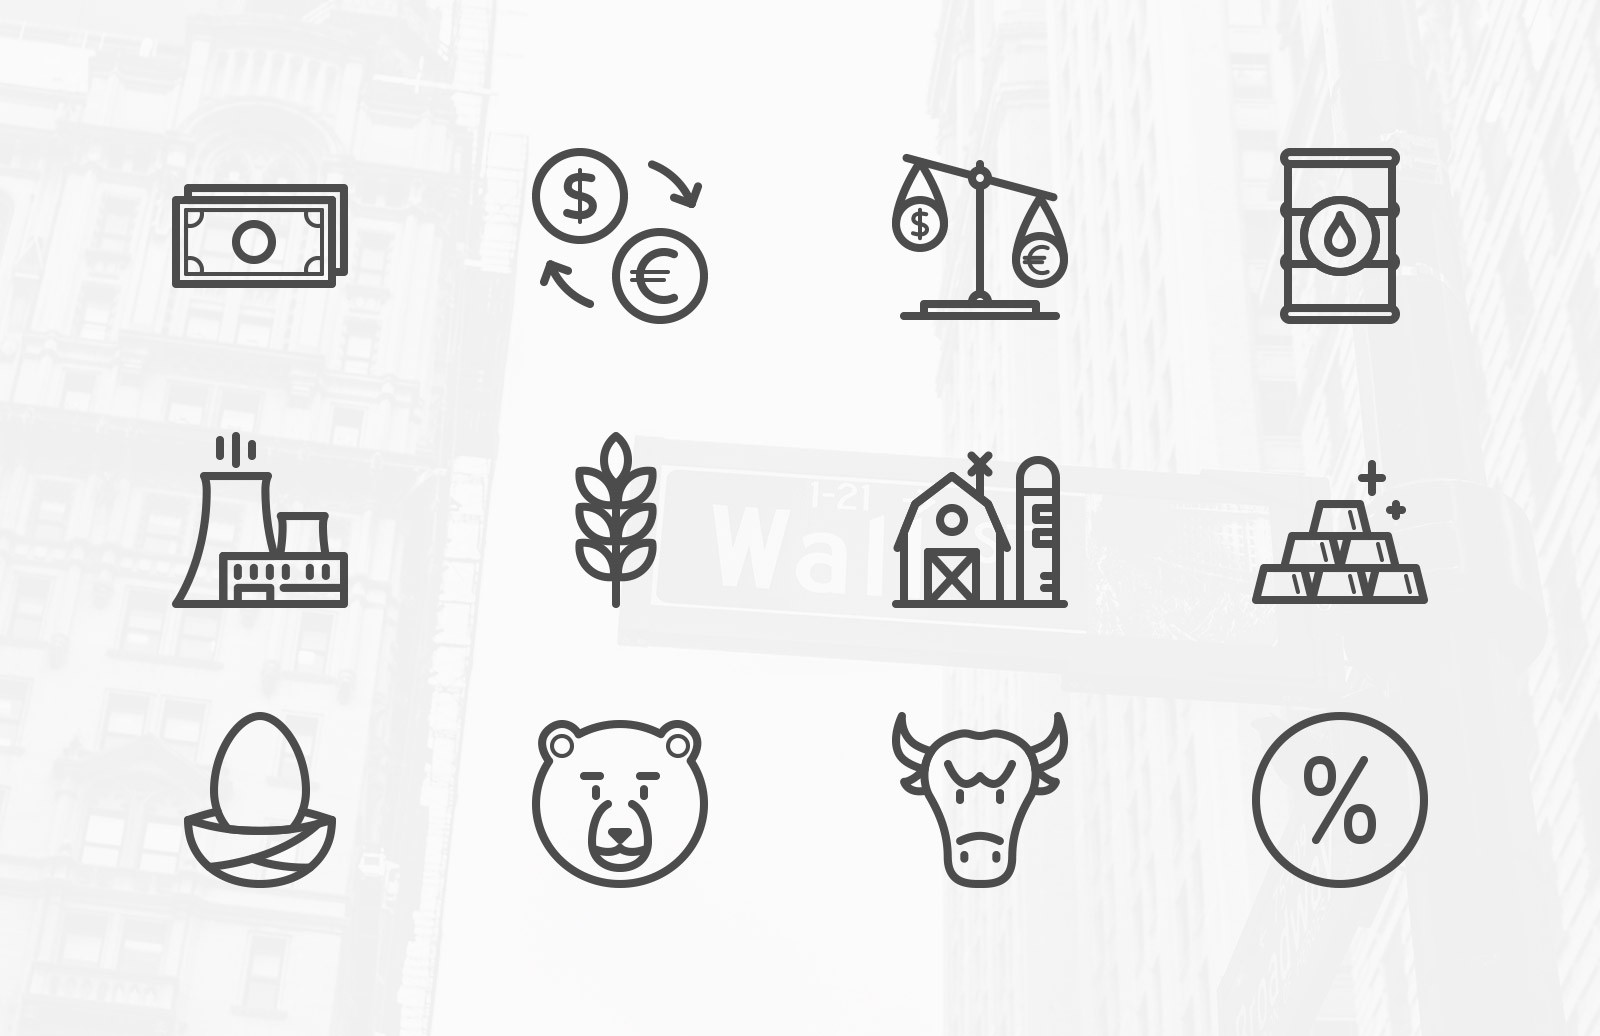 Stock  Market  Vector  Icons  Preview 1A